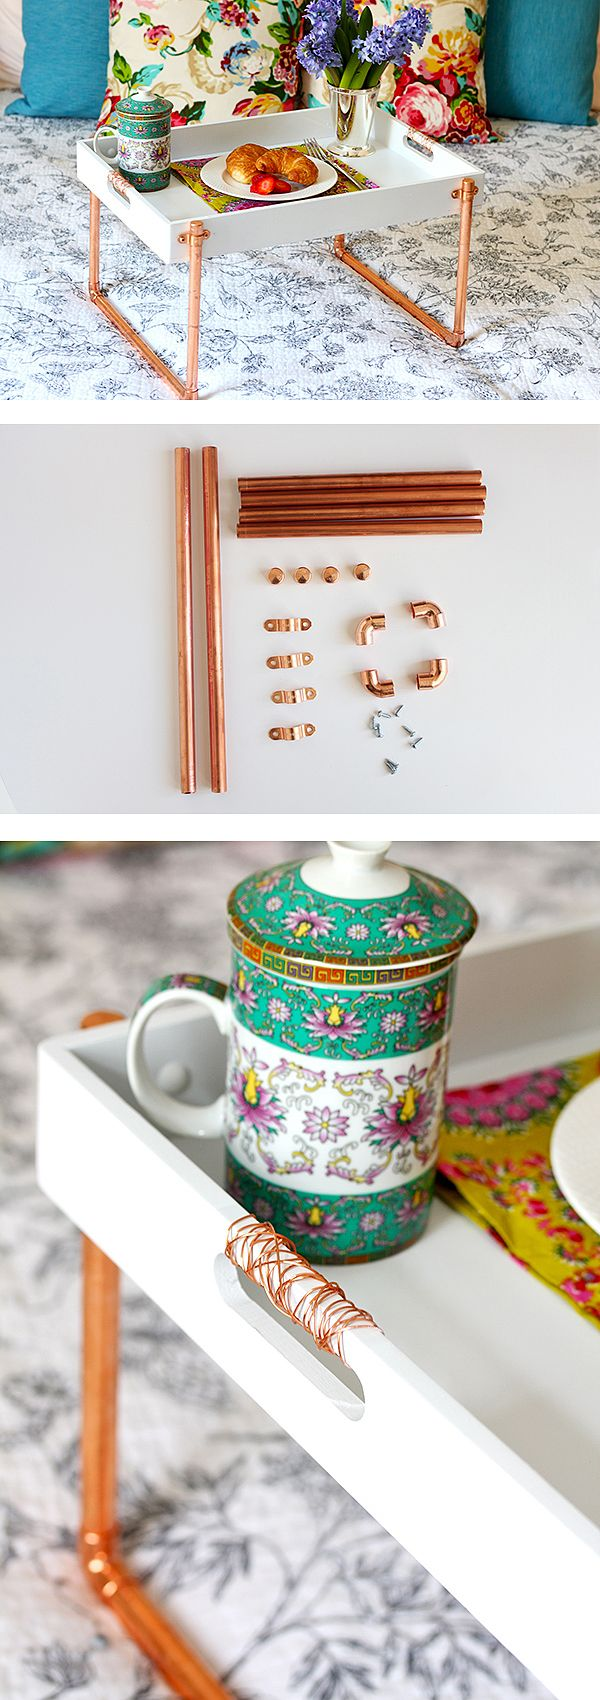 The copper pipe legs turned a simple wooden tray into a lovely and functional breakfast in bed tray in this pipe project by Amy Mikkelsen of Your Southern Peach. To make her tray even more glam, she added copper leaf to the pipe to make it extra shiny. Check out the tutorial on The Home Depot Blog.    @yoursouthpeach